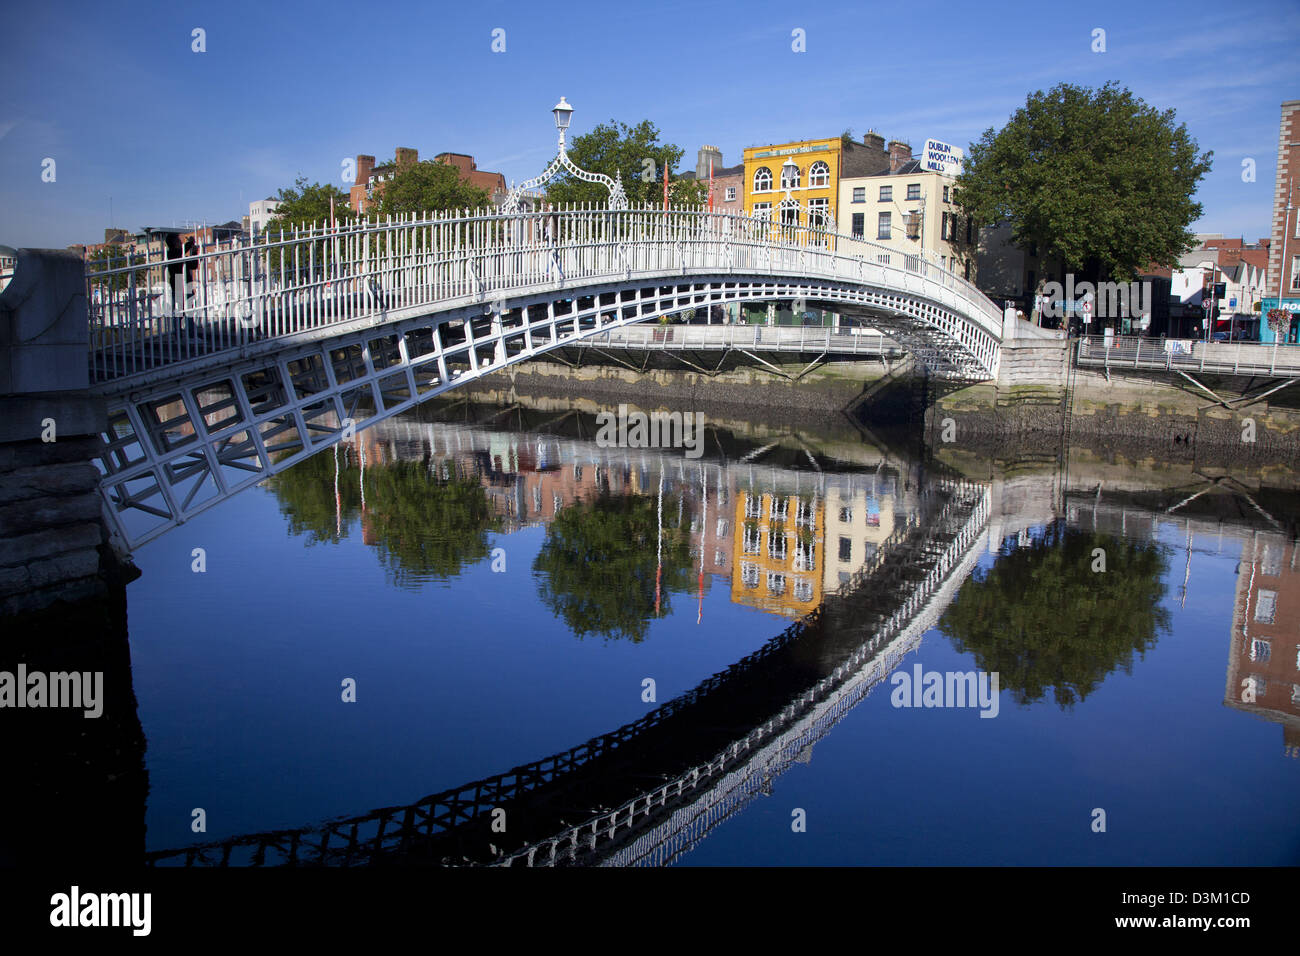 Reflection of Ha'penny Bridge in the River Liffey, Dublin city, County Dublin, Ireland. - Stock Image